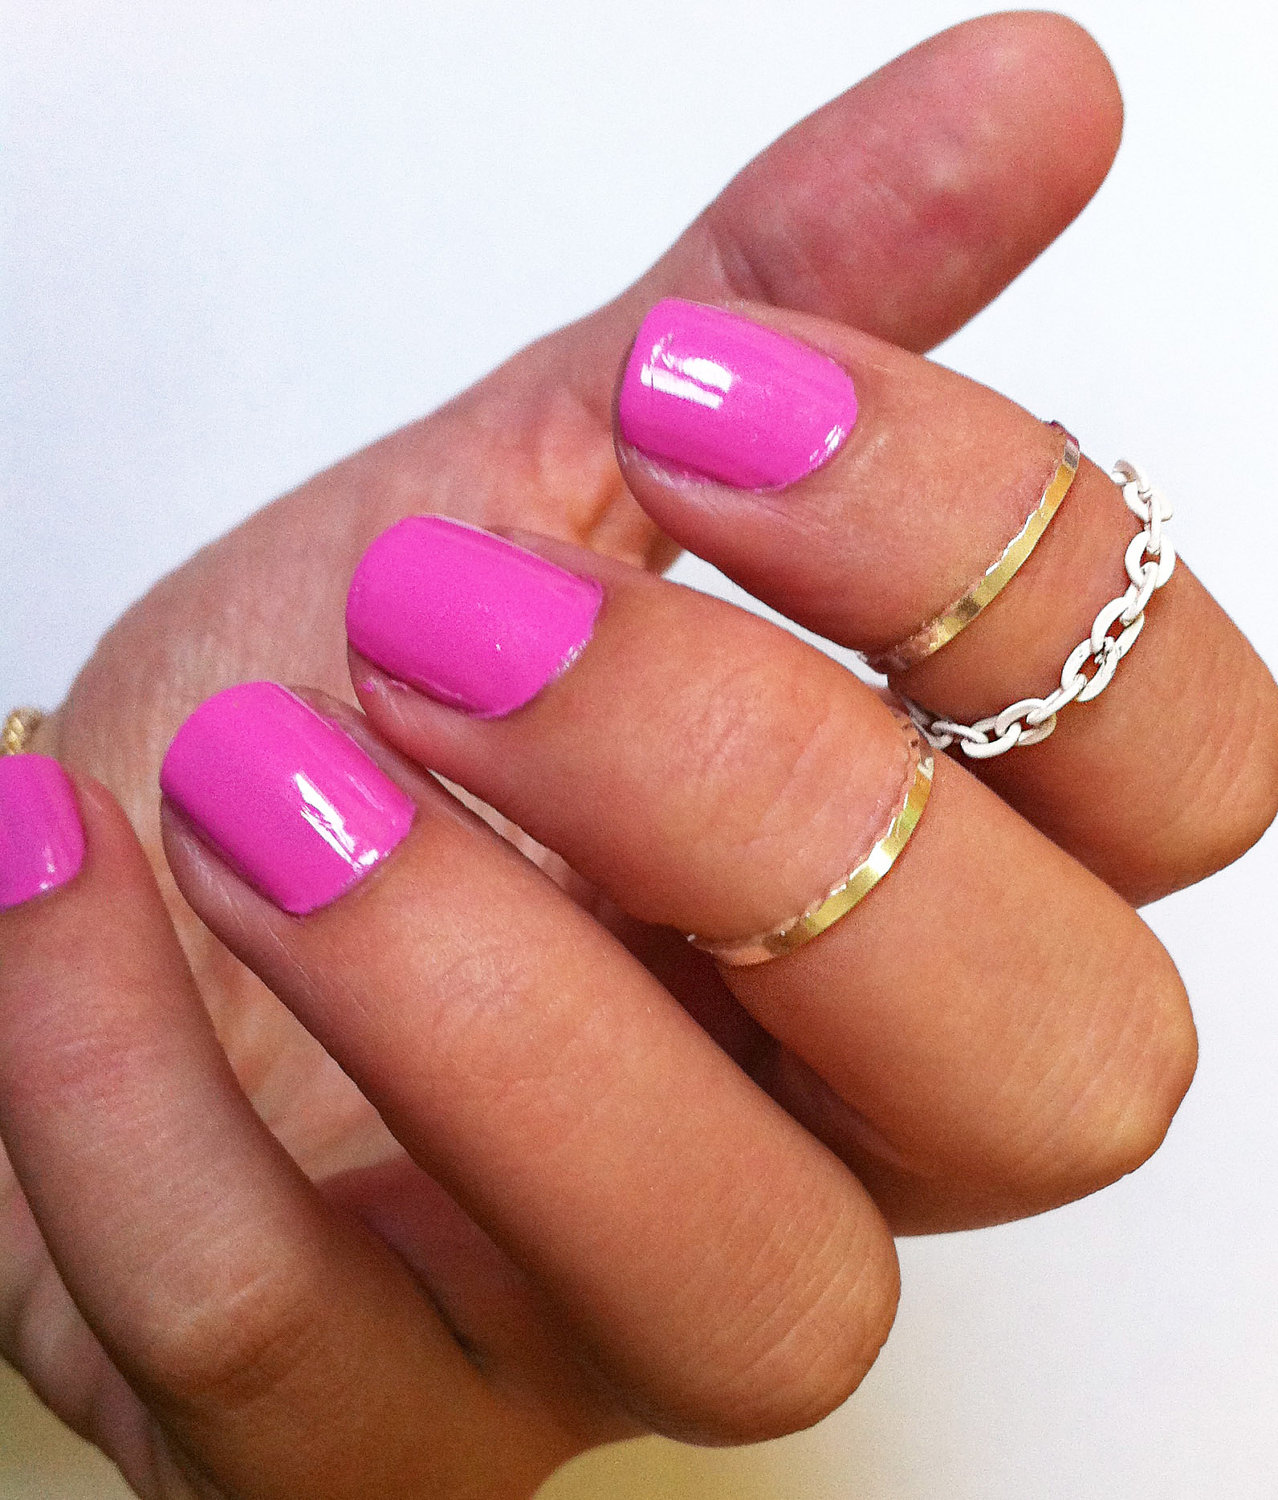 Fashion Trend: Knuckle Rings [PHOTO]